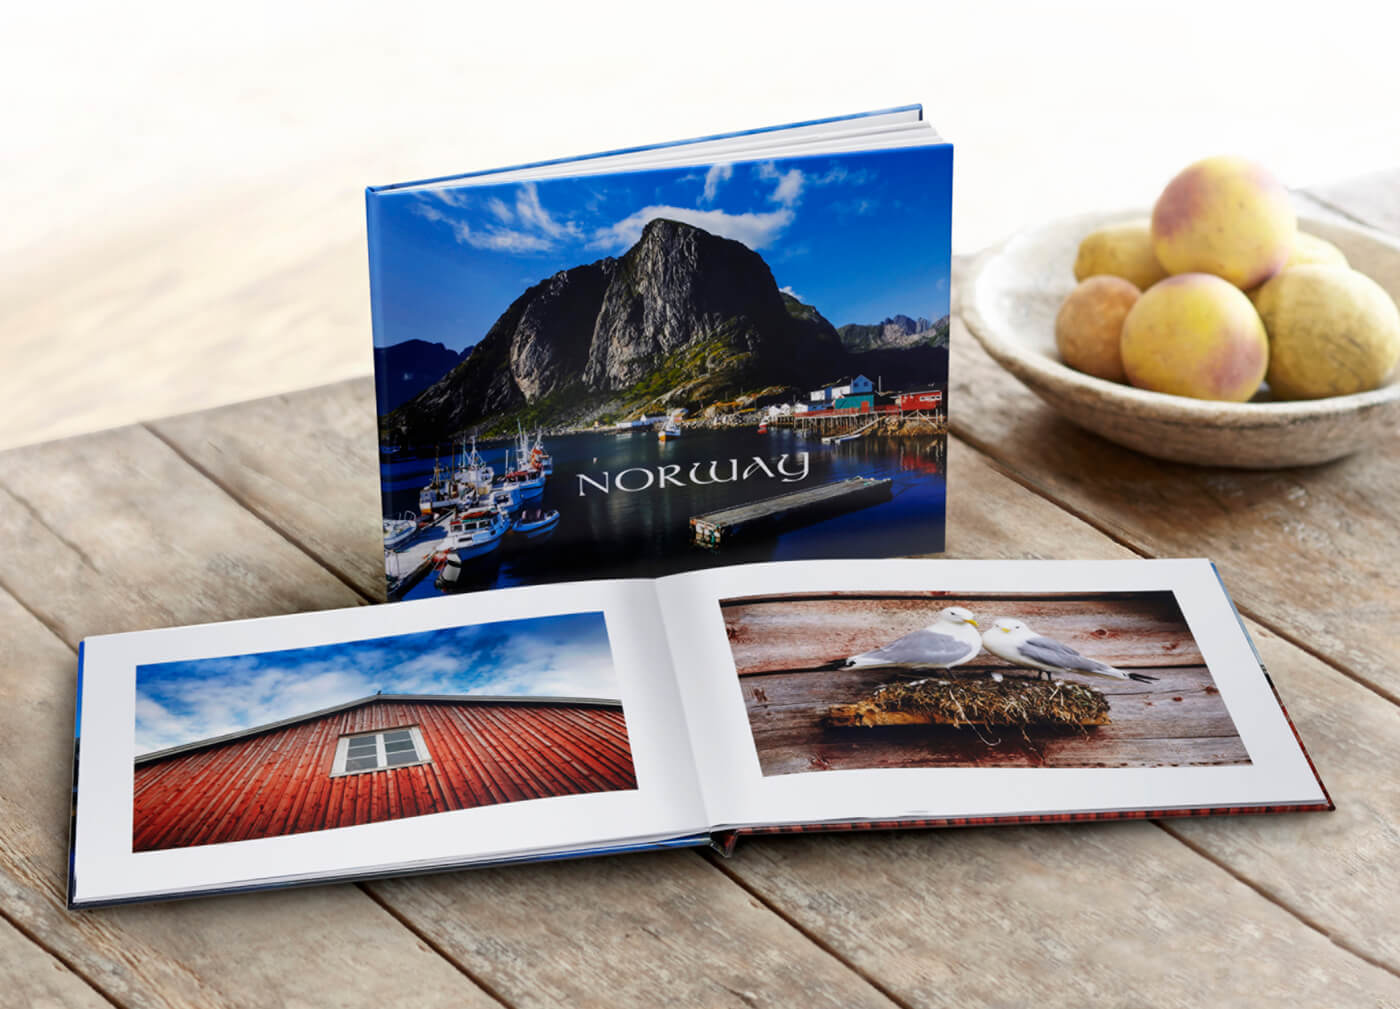 photo book of norway by printique on table